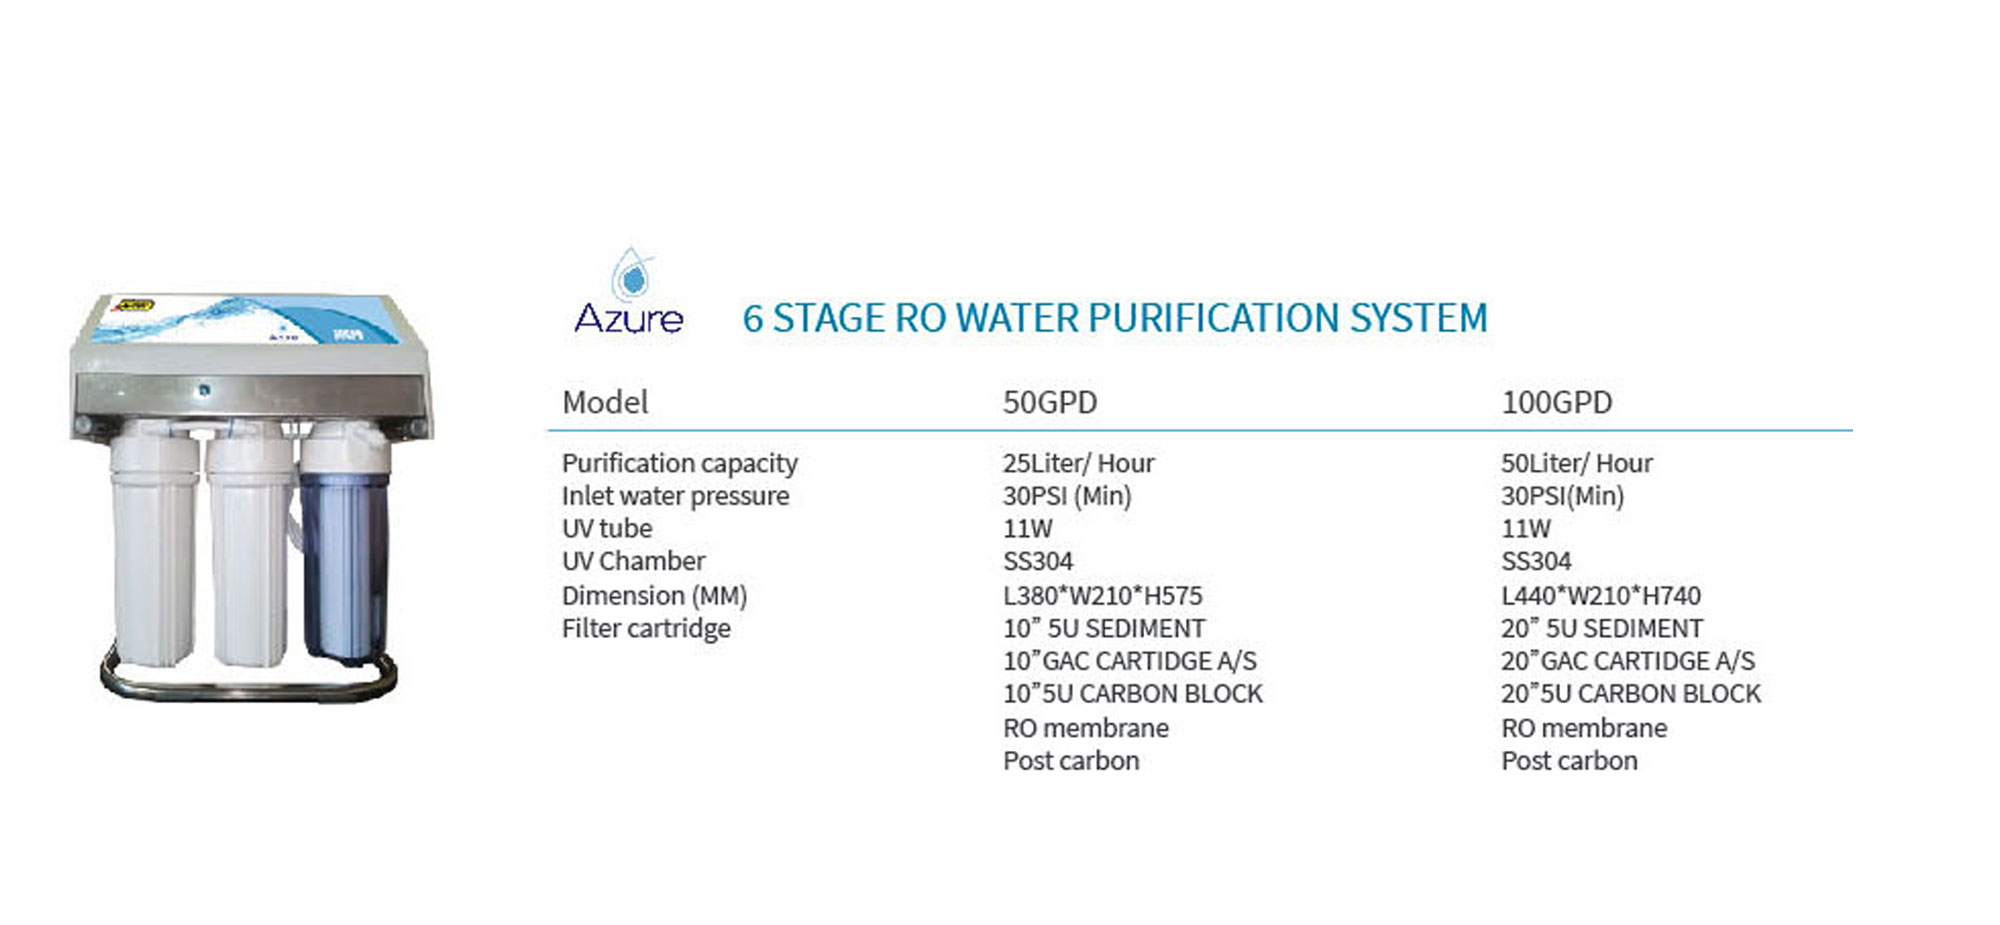 6 Stage RO water purification sytem